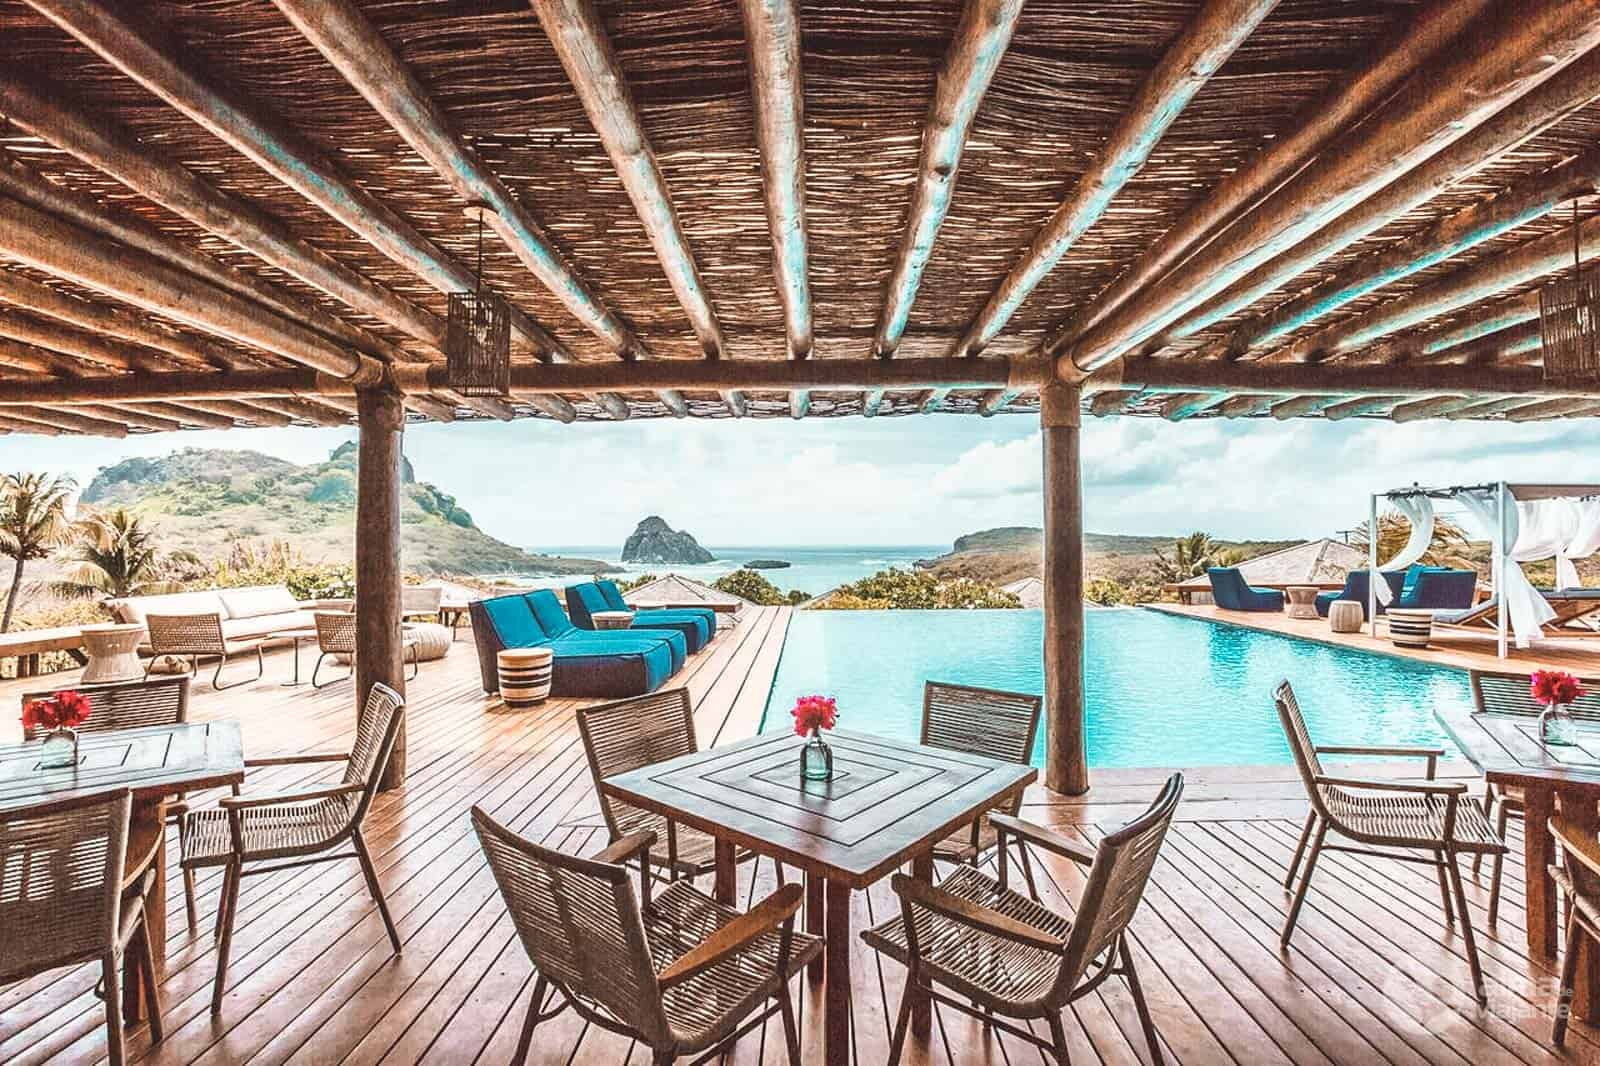 Where to stay in Fernando de Noronha: Pousada Maravilha